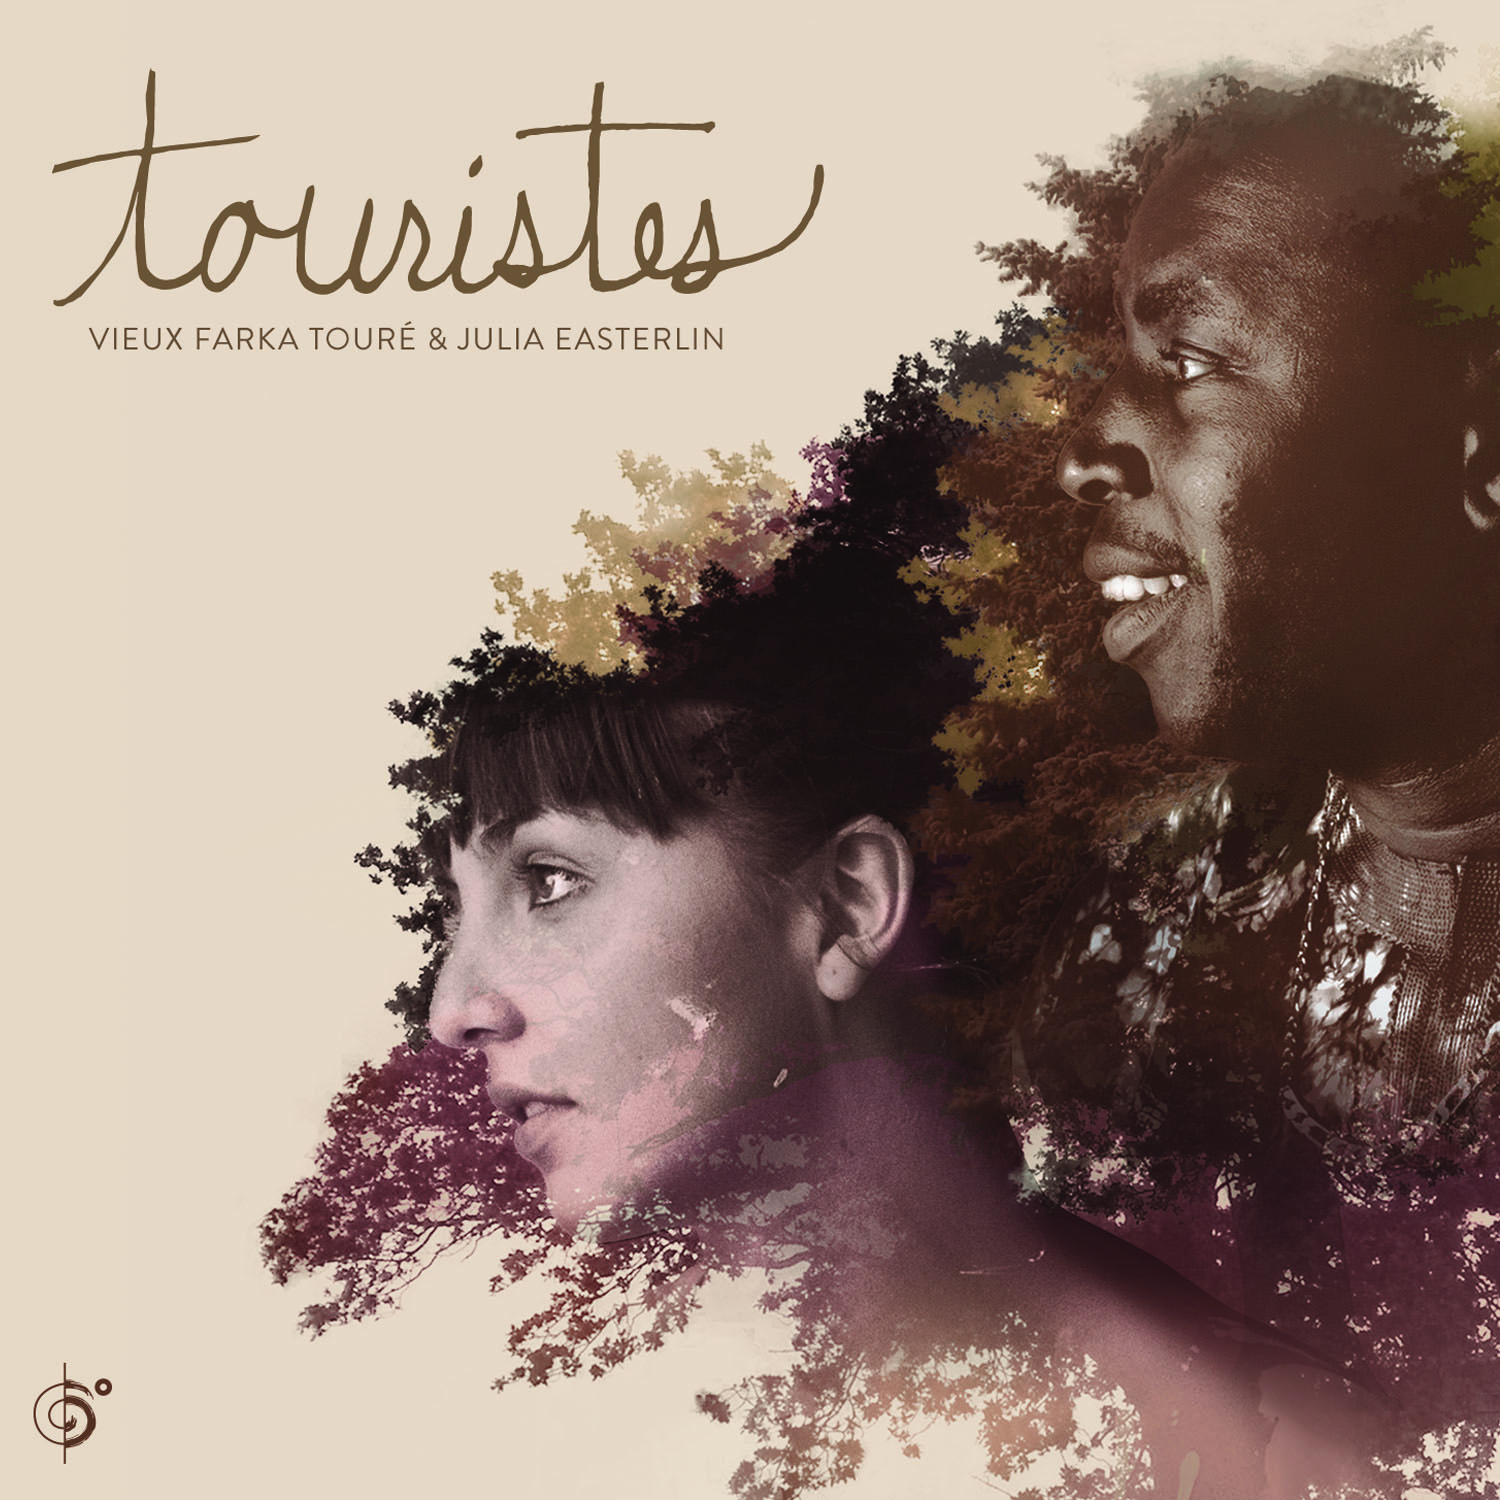 Vieux Farka Touré & Julia Easterlin – Touristes